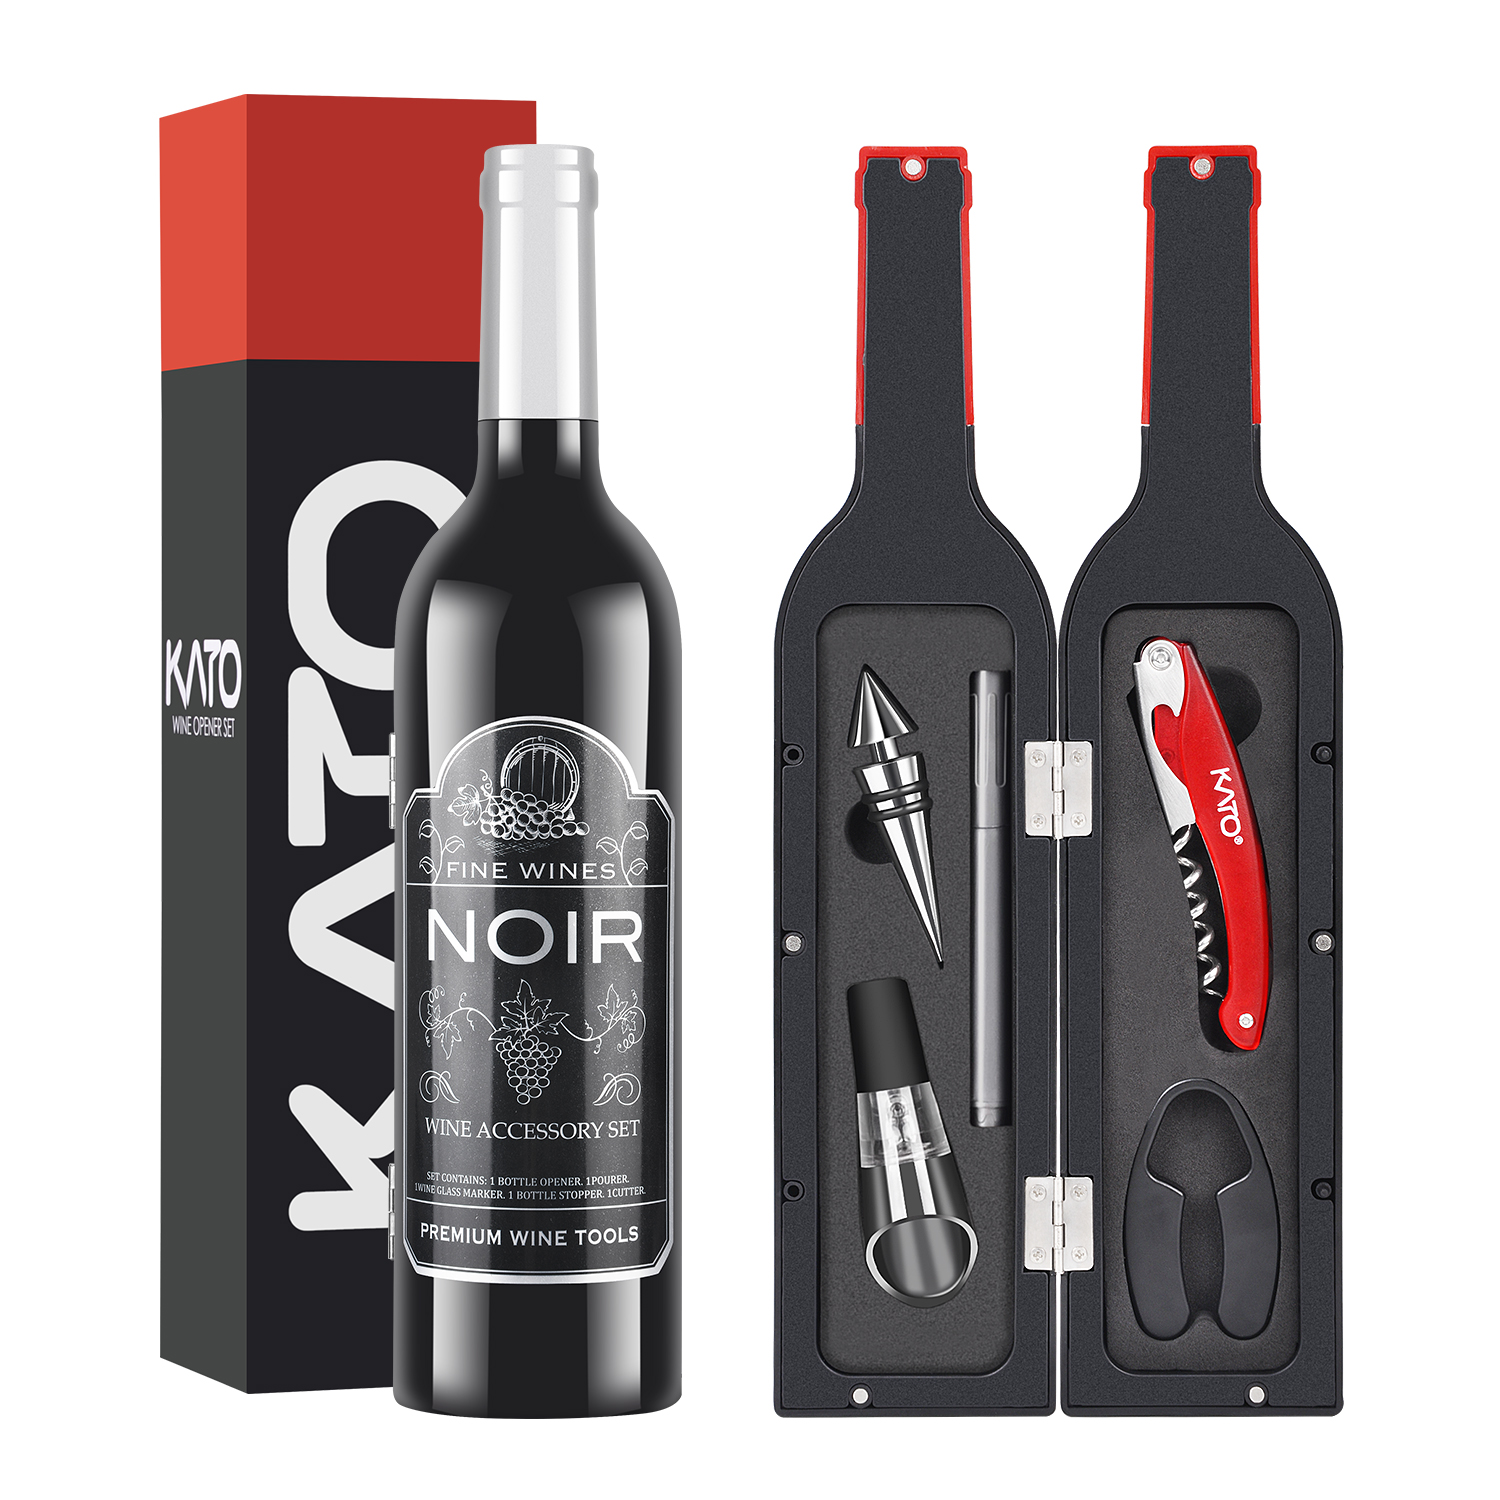 Kato Deluxe Wine Accessory Gift Set- Wine Bottle Corkscrew Opener, Stopper, Aerator Pourer, Foil Cutter, Glass Paint Marker, with Free Reusable Drink Marker Stickers, Best Gift for Wine Lover